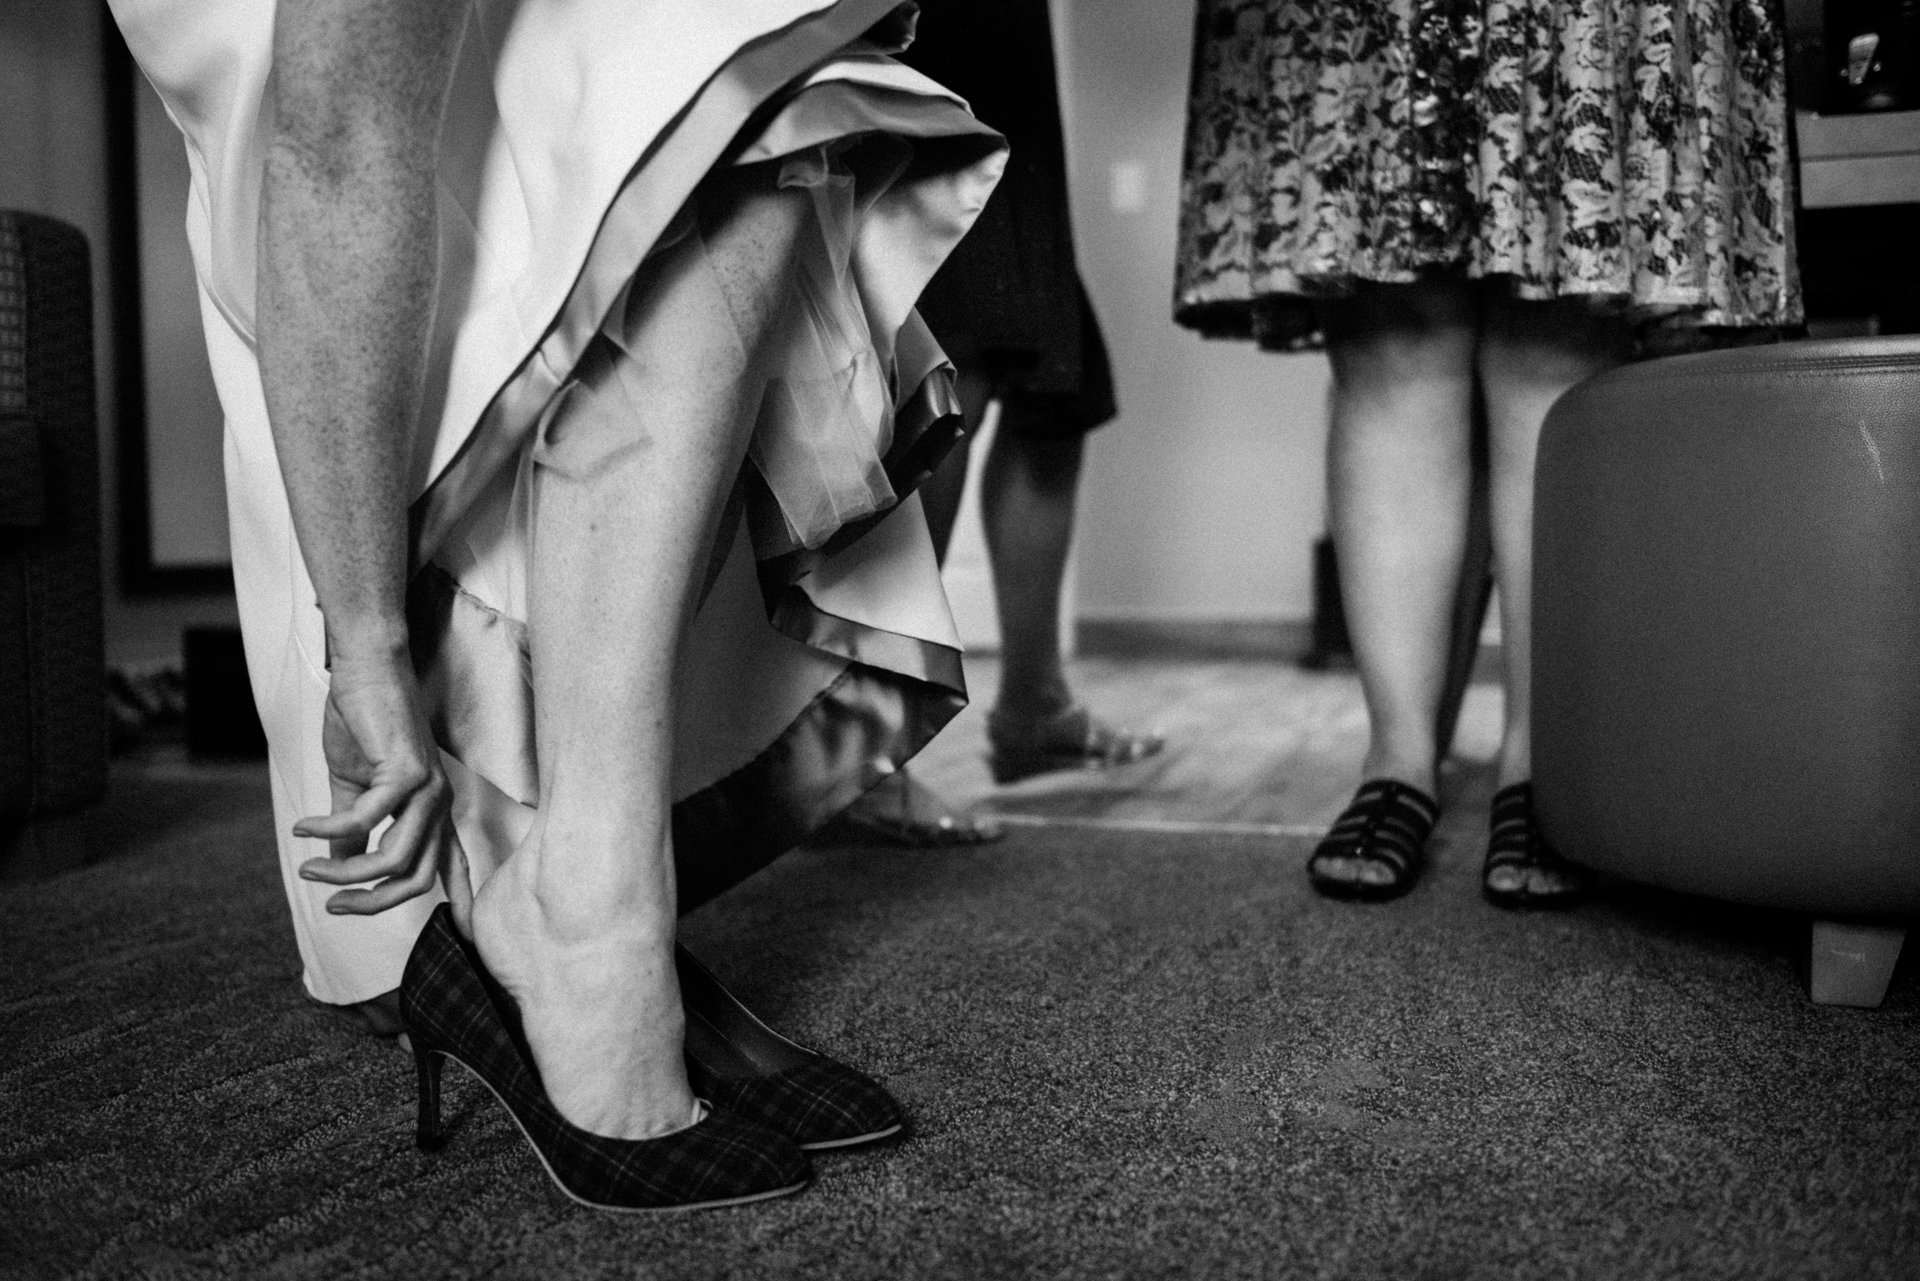 Homewood Suites by Hilton Ottawa Kanata Wedding Photos | When it's time to leave the hotel suite for the ceremony, the bride grows nervous